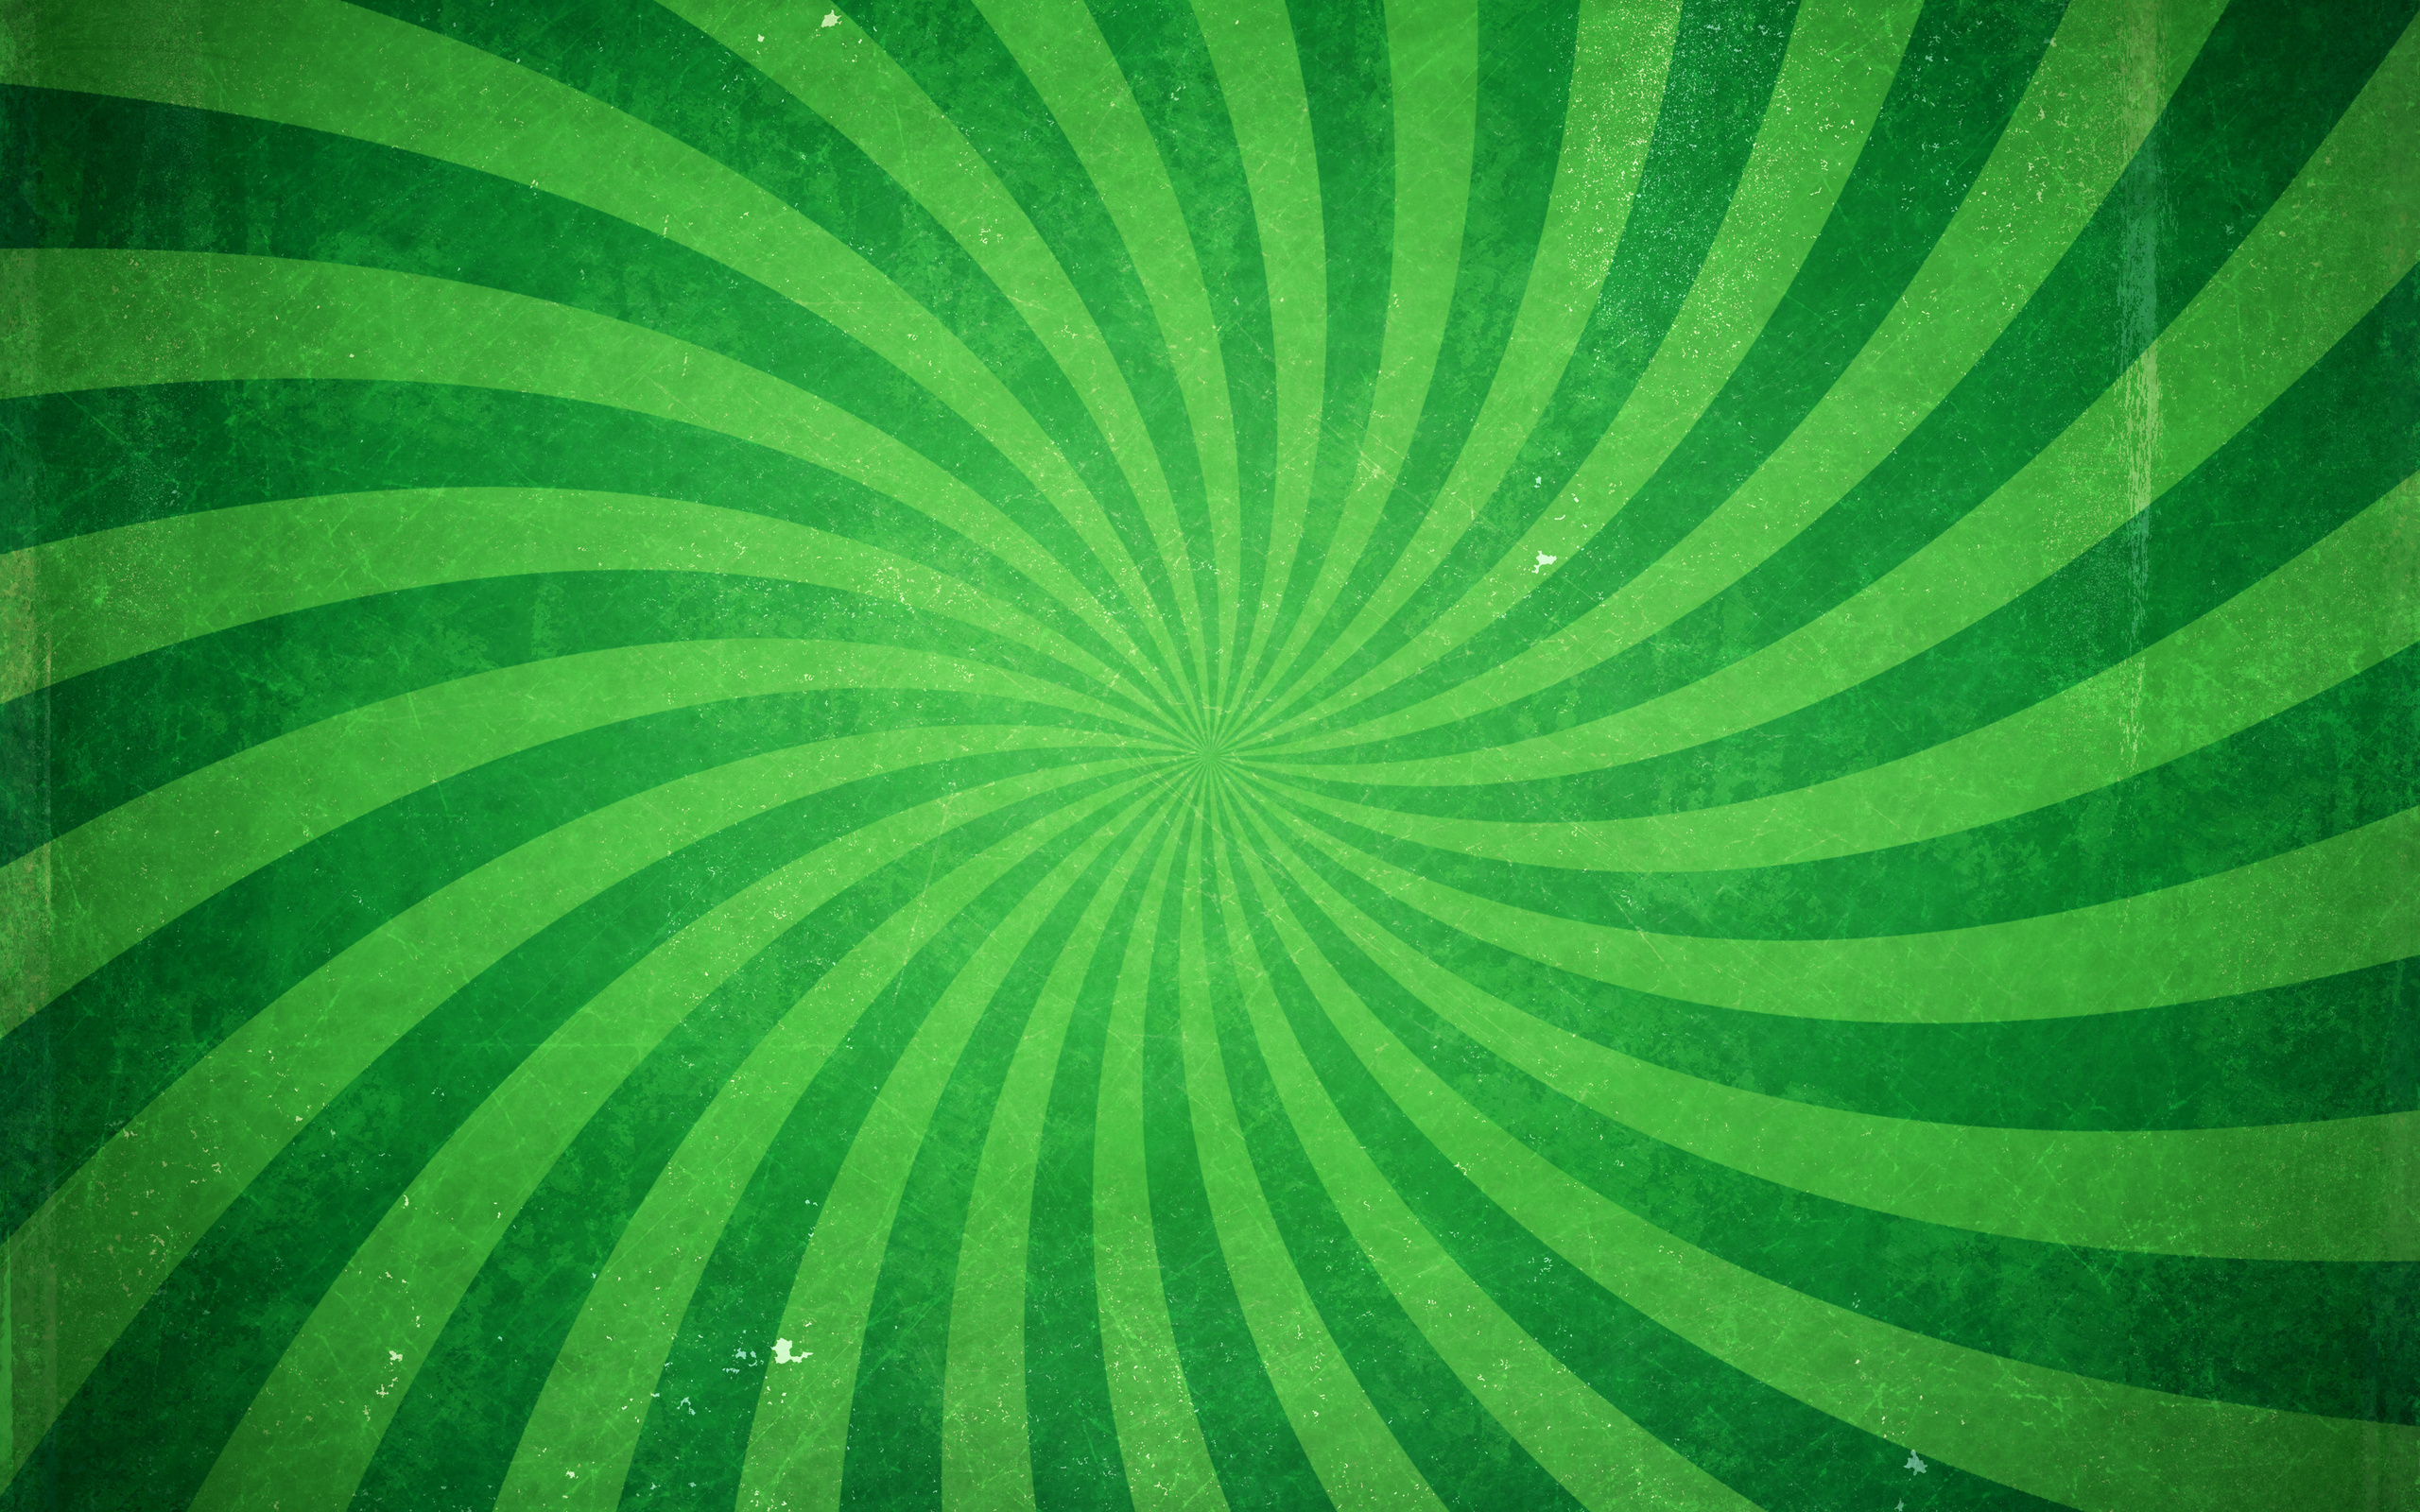 Abstract Green Desktop Background Green Wallpaper